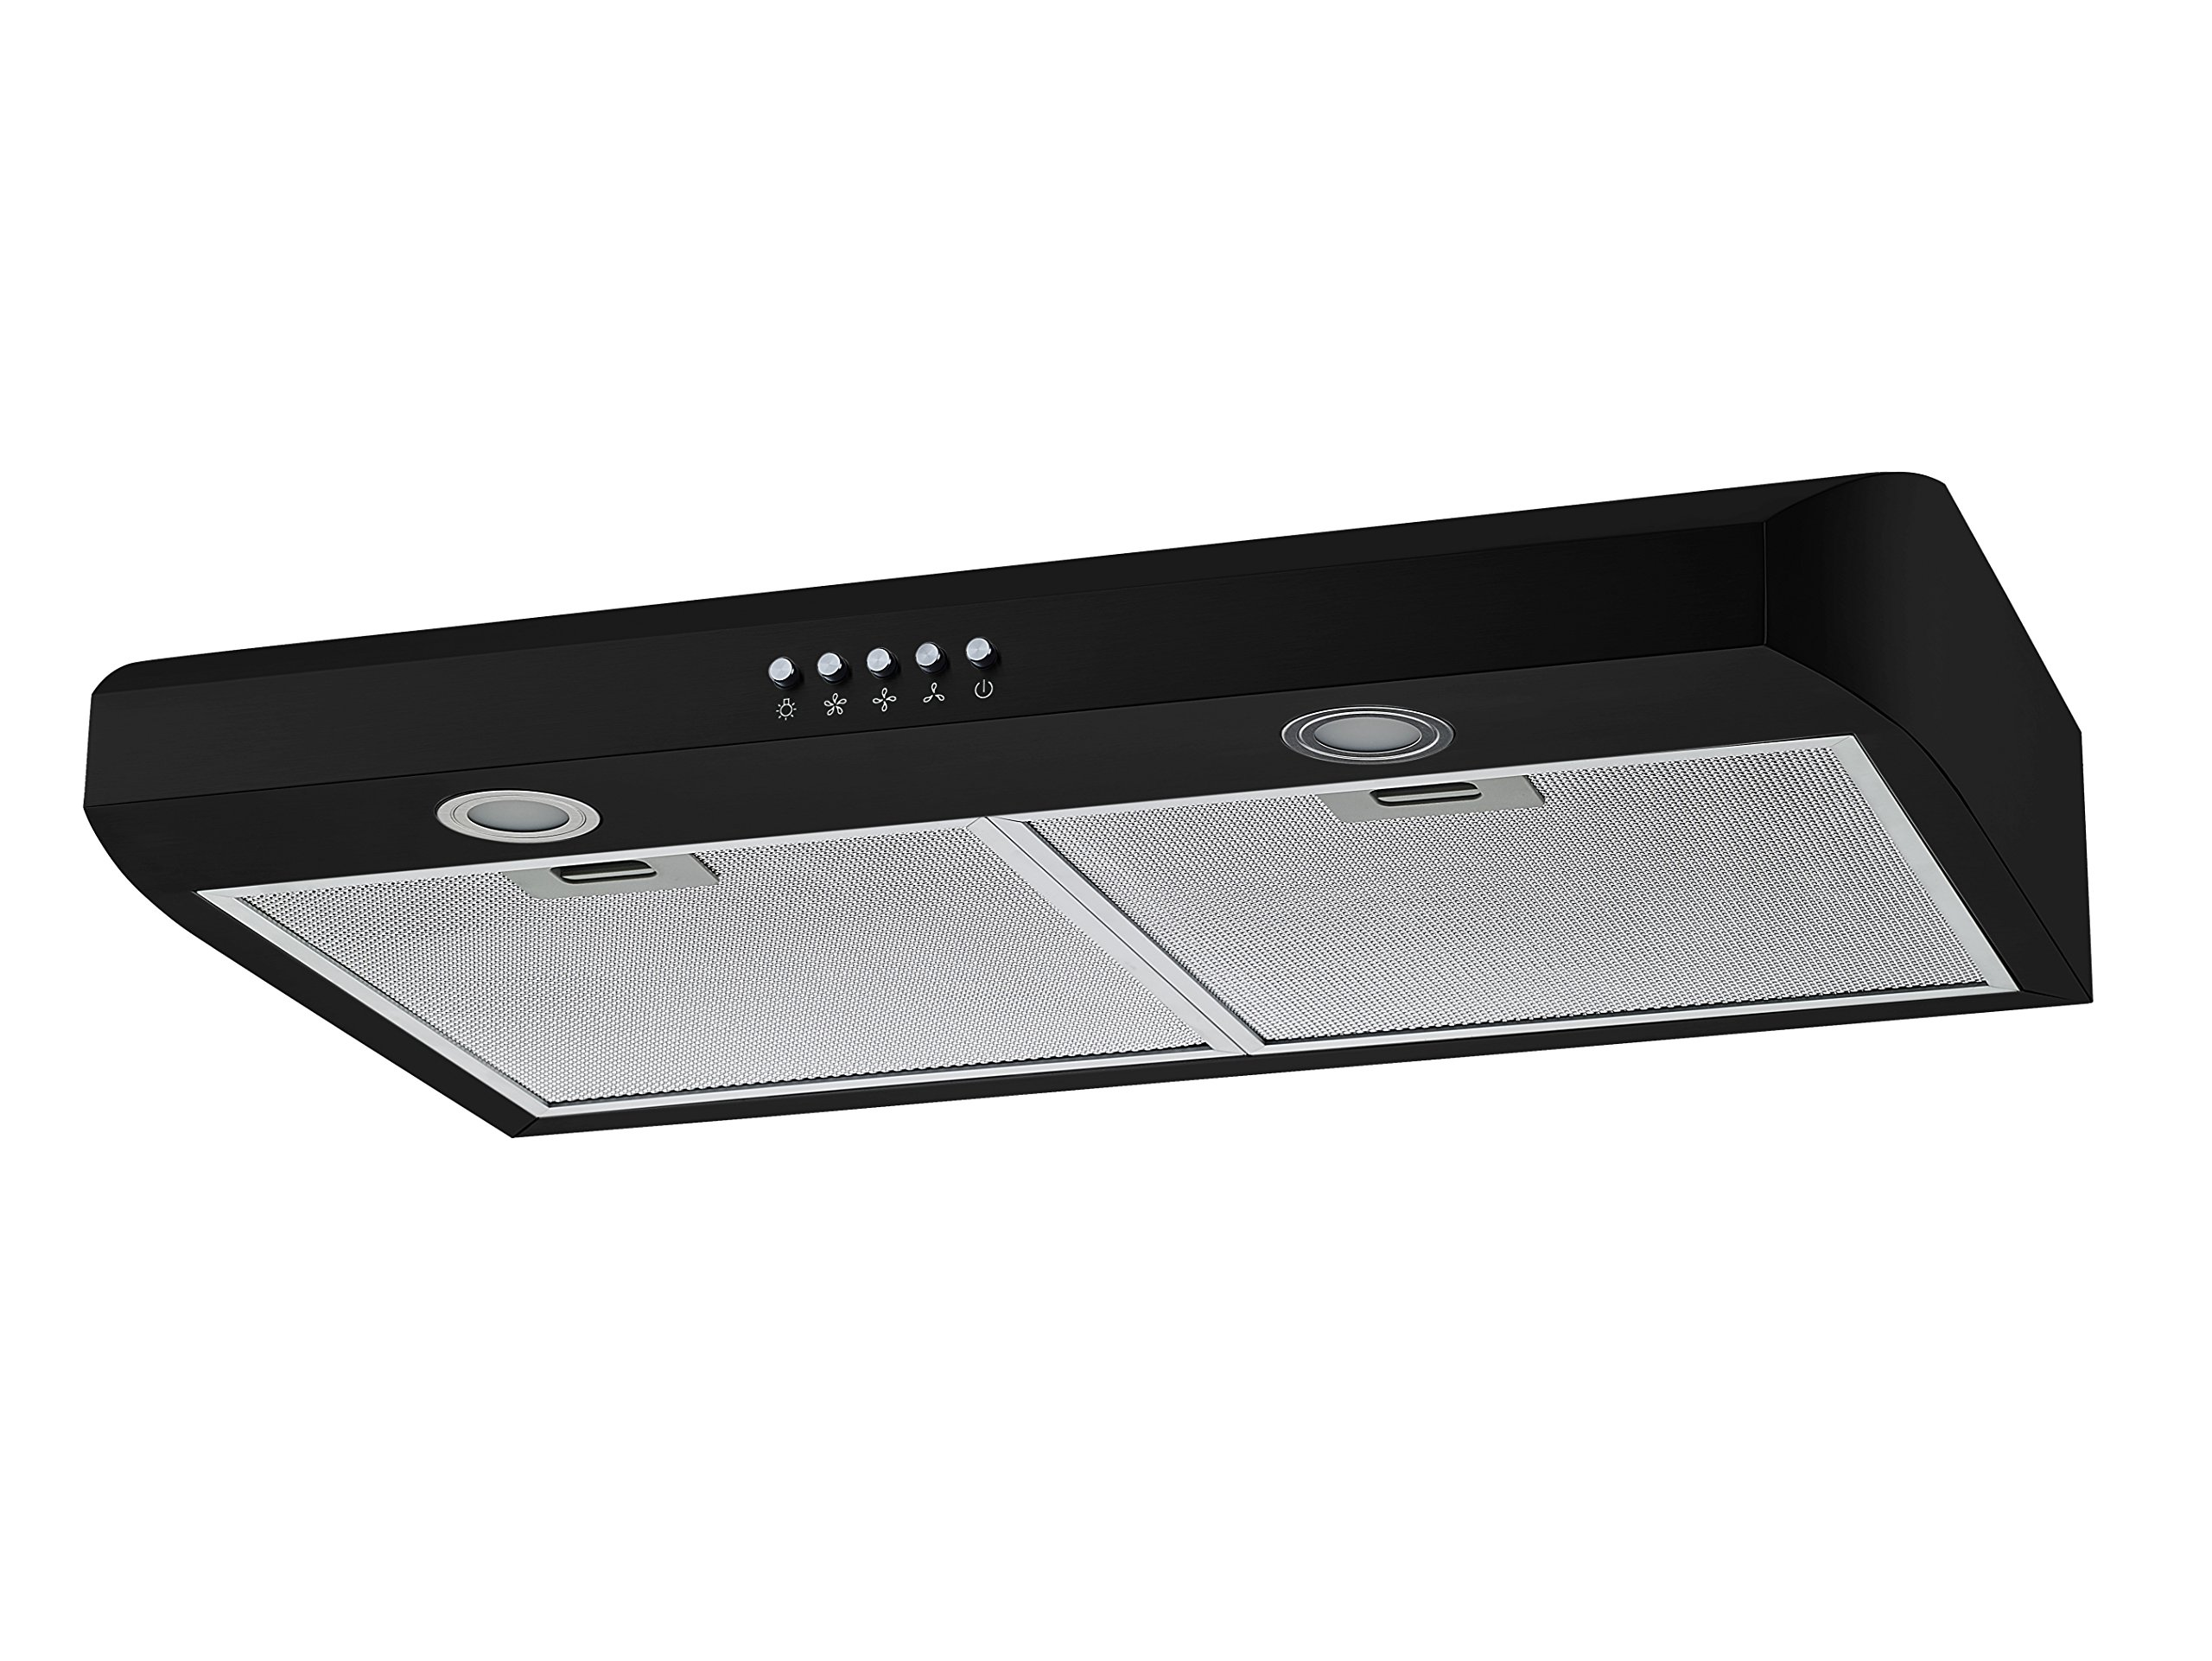 Winflo 30'' Under Cabinet Black Color European Slim Design Kitchen Range Hood Push Button Control Included Dishwasher-Safe Aluminum Filters and LED Lights